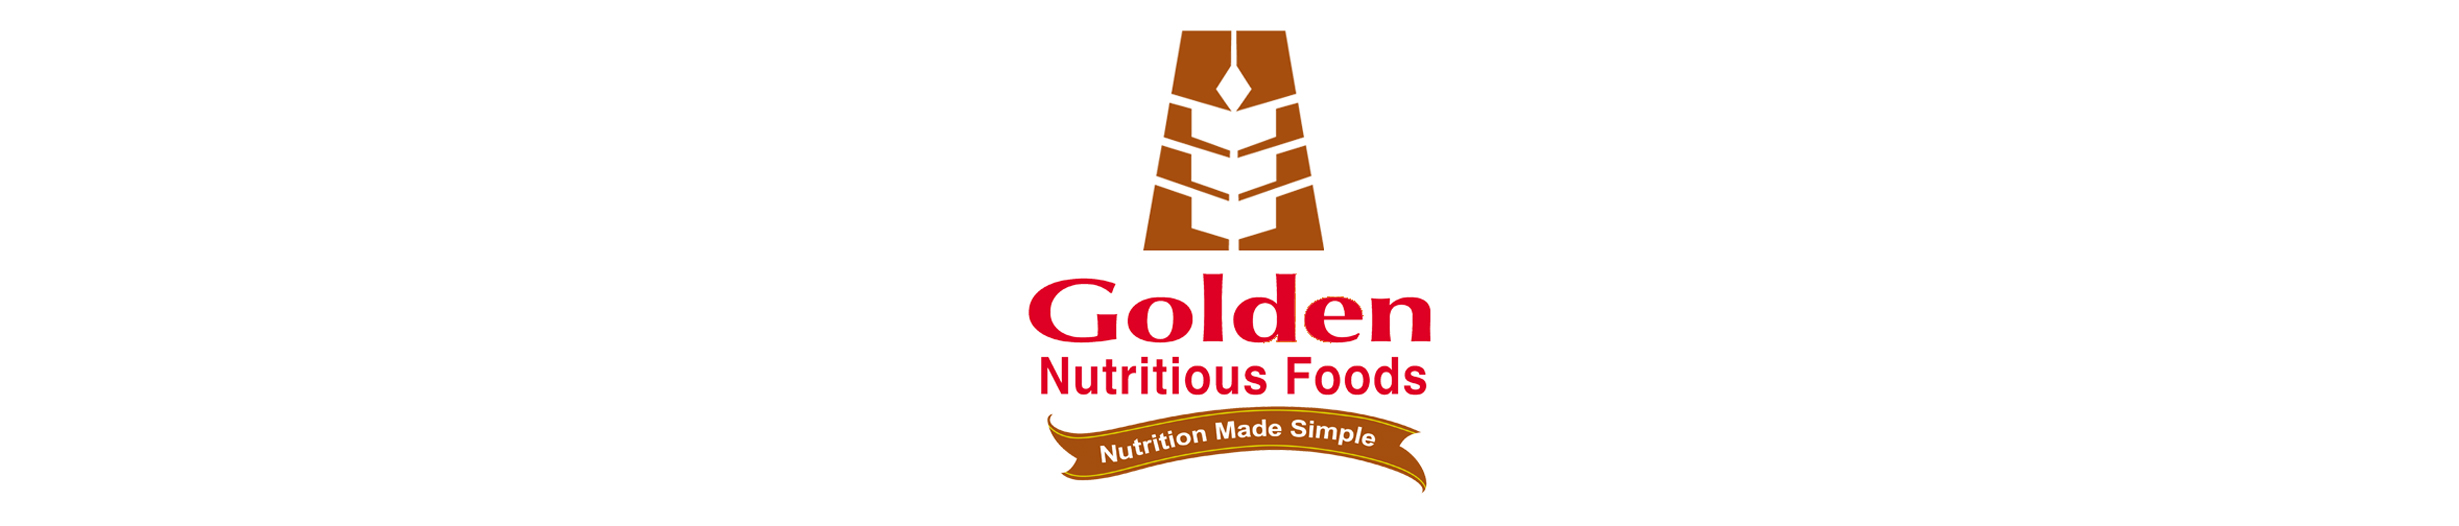 GOLDEN%20NUTRITIOUS%20FOODS%20CORPORATIO